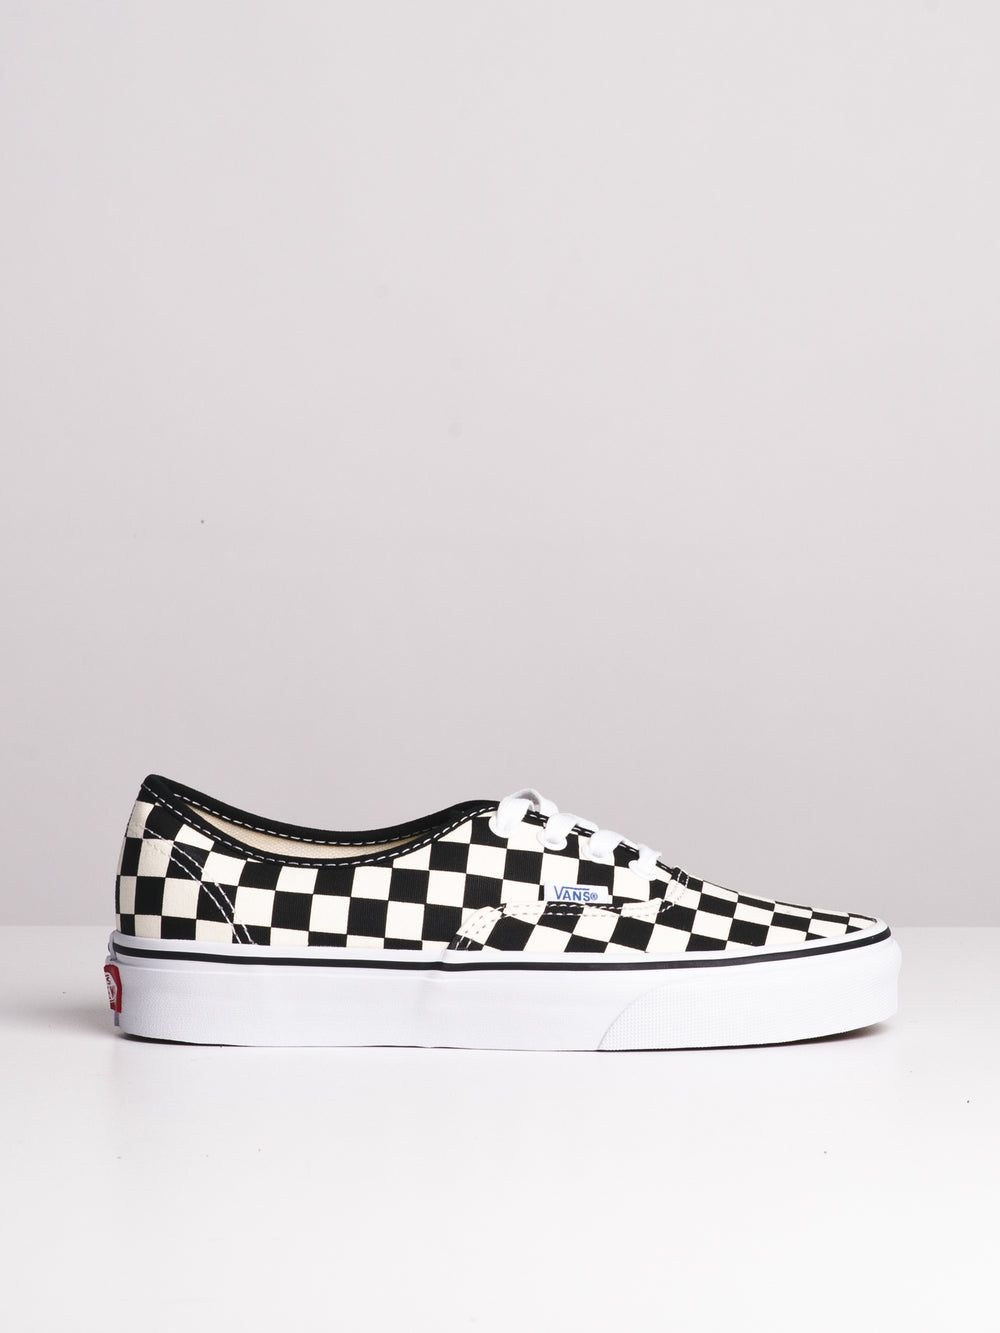 WOMENS AUTHENTIC - GOLDEN COAST CHECK